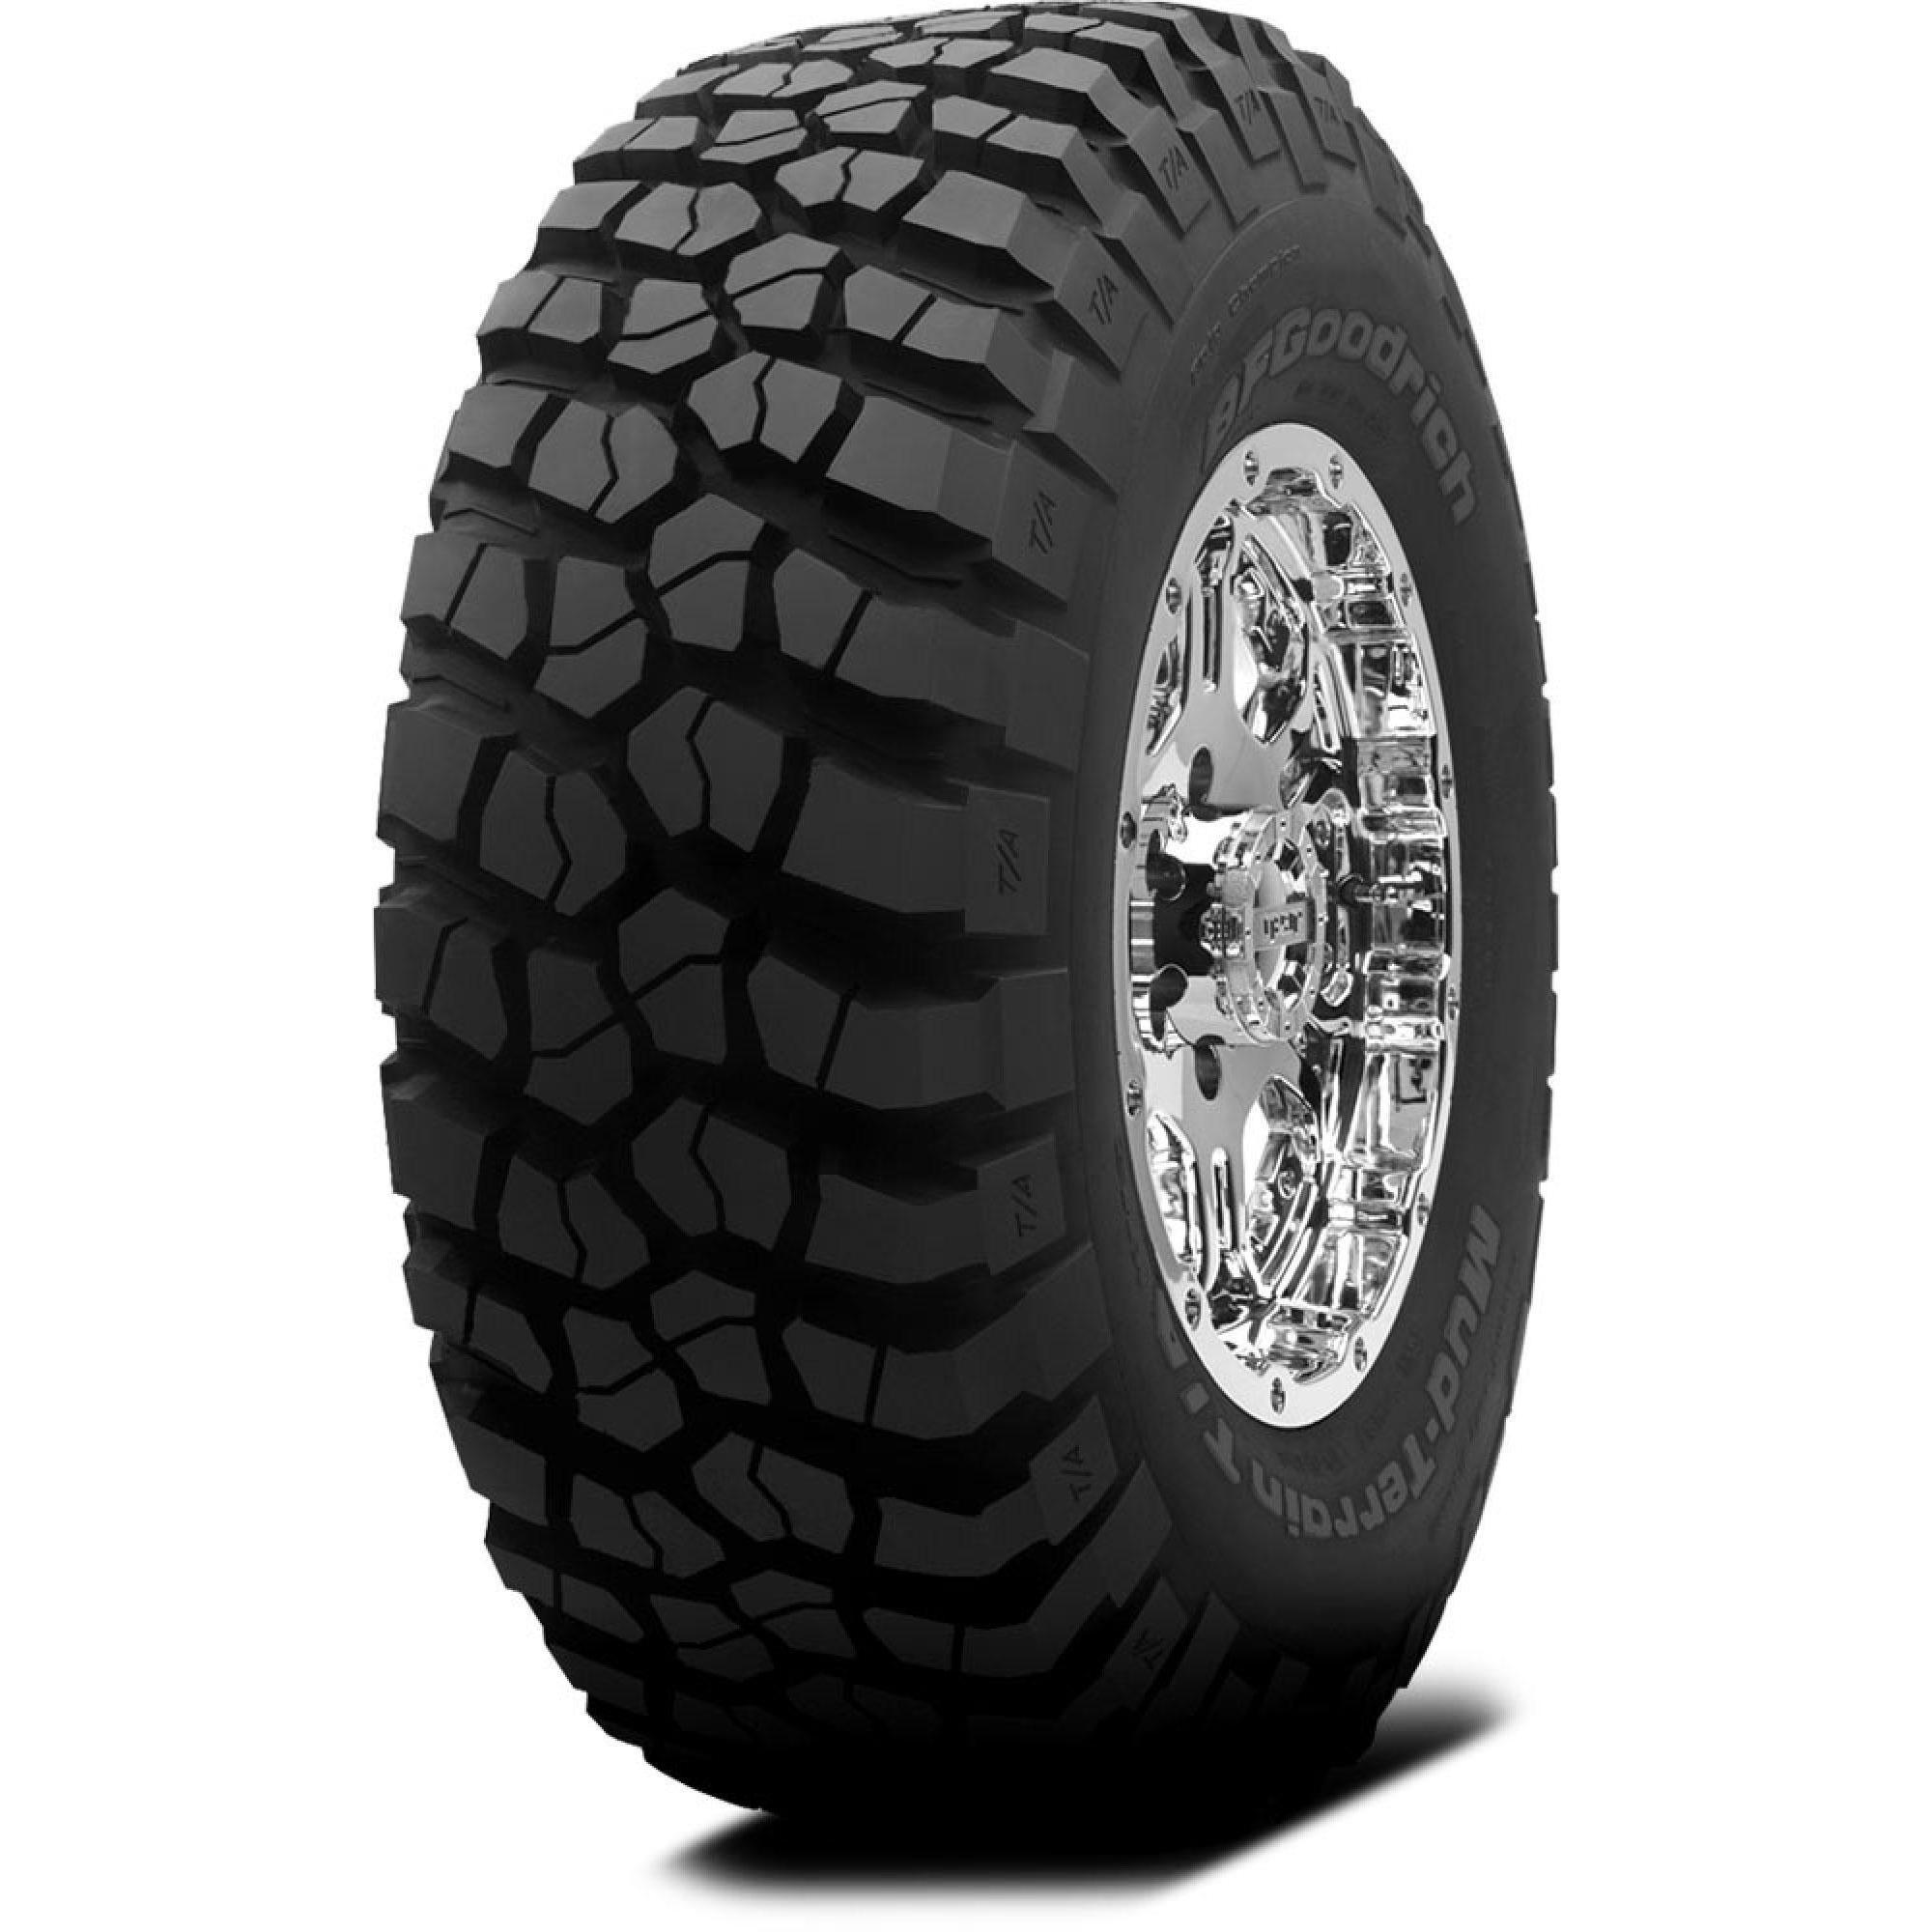 All Terrain Tires Vs Mud Terrain Tires Tirebuyer Com Tirebuyer Com